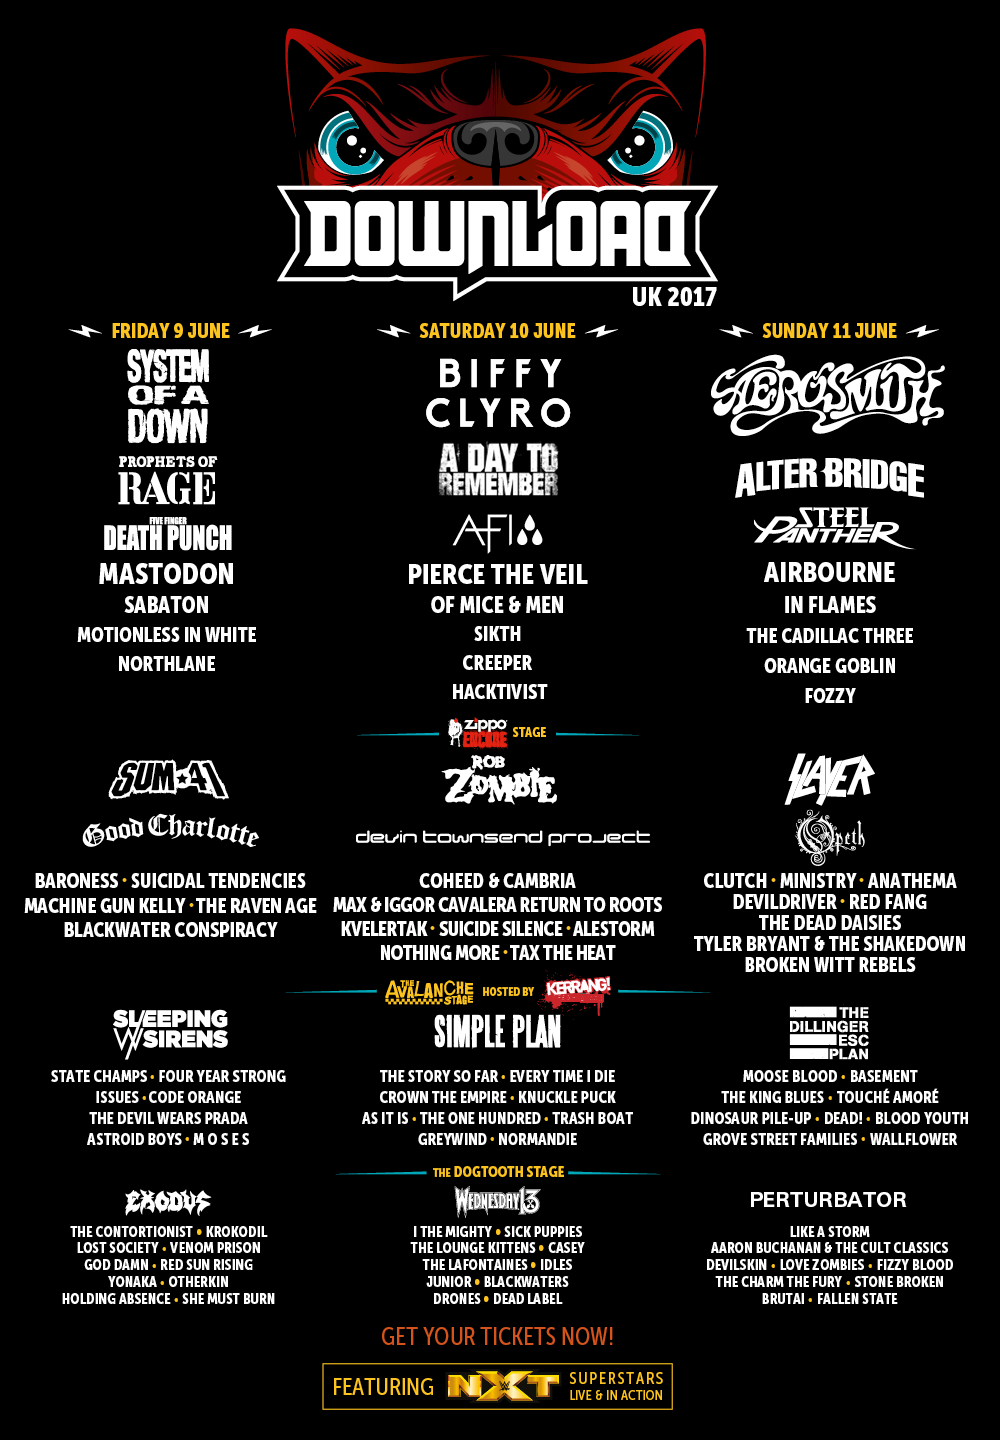 download 2017 line up web poster 3134 approved 27.04.2017